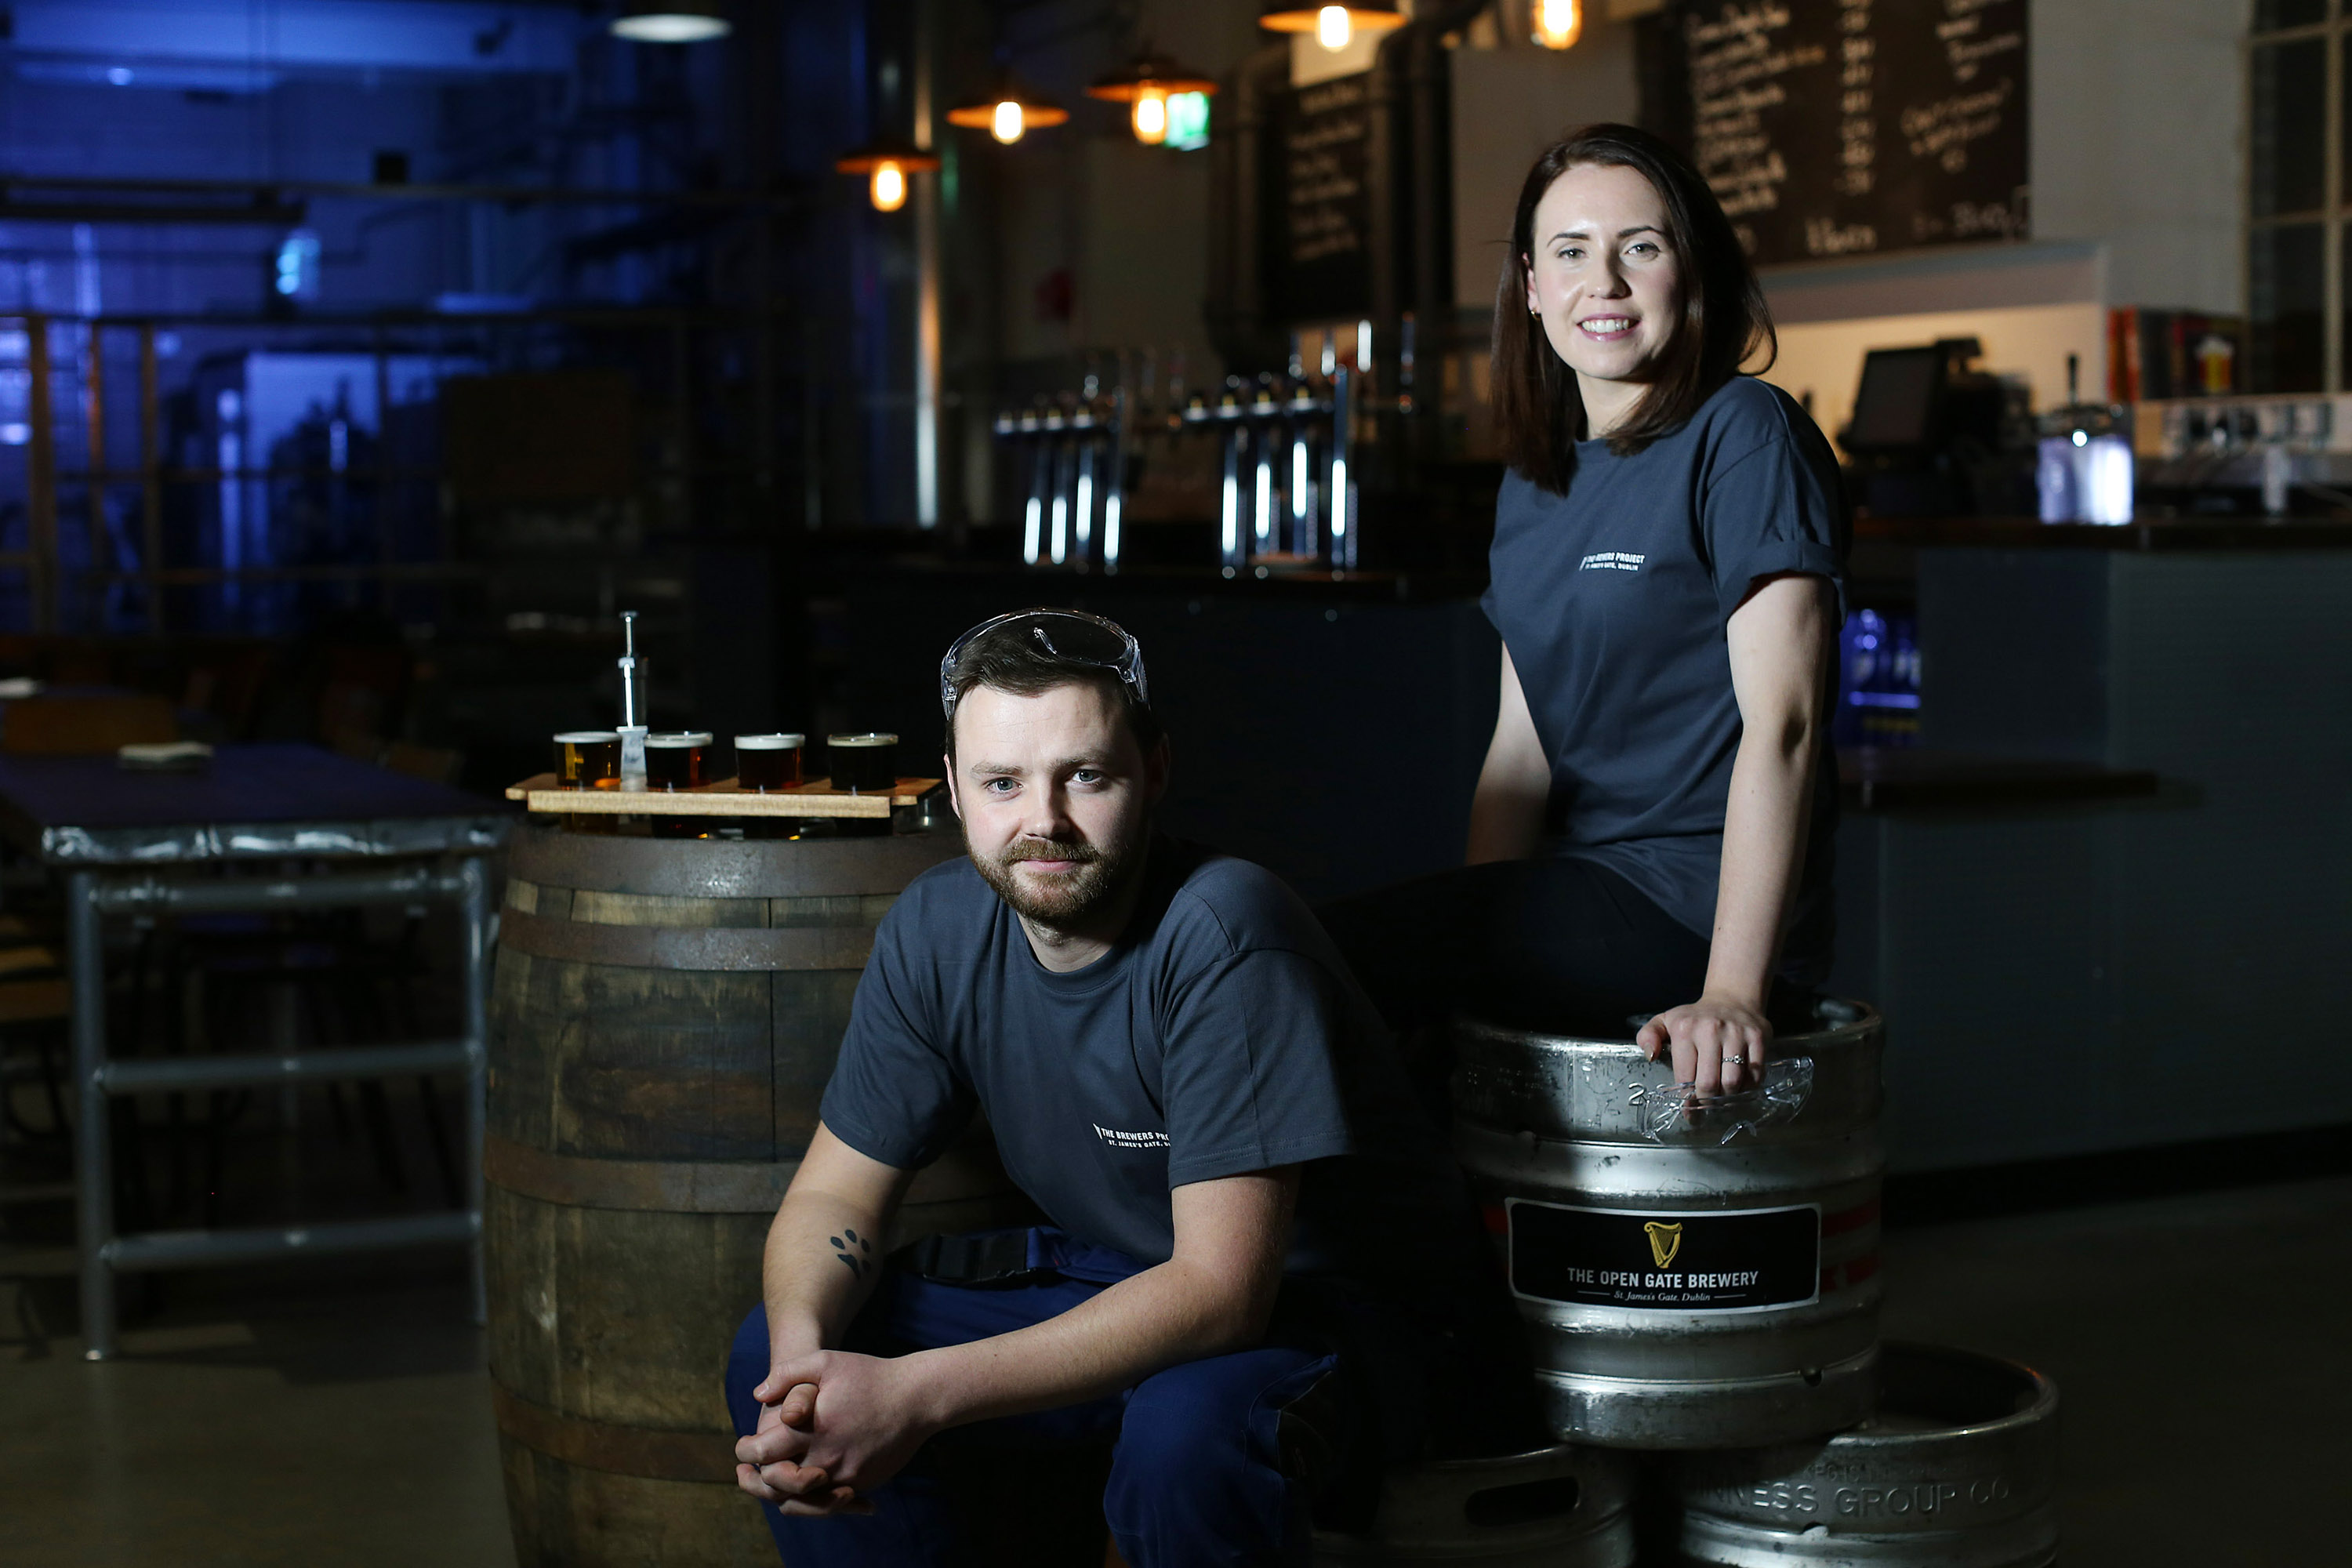 Embargo of 3pm 18th November 2015 18/11/2015 NO REPRO FEE, MAXWELLS DUBLIN FOR THE FIRST TIME IN ITS HISTORY GUINNESS OPENS EXPERIMENTAL BREWERY TO THE PUBLIC Pic shows ( l to r) Jason and Feodora. Continuing in a long-standing tradition of brewing innovation and excellence, the Guinness brewers at St. James's Gate are proud to announce the launch of The Open Gate Brewery. Those interested in visiting The Open Gate Brewery should log on to www.guinnessopengate.com, call (01) 4712455 or email info@guinnessopengate.com to reserve a place. (Strictly over 18s only, management reserves the right to refuse admission) Visit Drinkaware.ie Enjoy Guinness sensibly For further information please contact Wilson Hartnell Elisabeth Fitzpatrick (01) 6690030 / (086) 6092571 / elisabeth.fitzpatrick@ogilvy.com Niamh Commins on (01) 6690030 / (085) 8371723 / niamh.commins@ogilvy.com Marie-Claire Whelan on (01) 6690030/ (086) 0735437 / marie-claire.whelan@ogilvy.com PIC: NO FEE, MAXWELLS Embargo of 3pm 18th November 2015